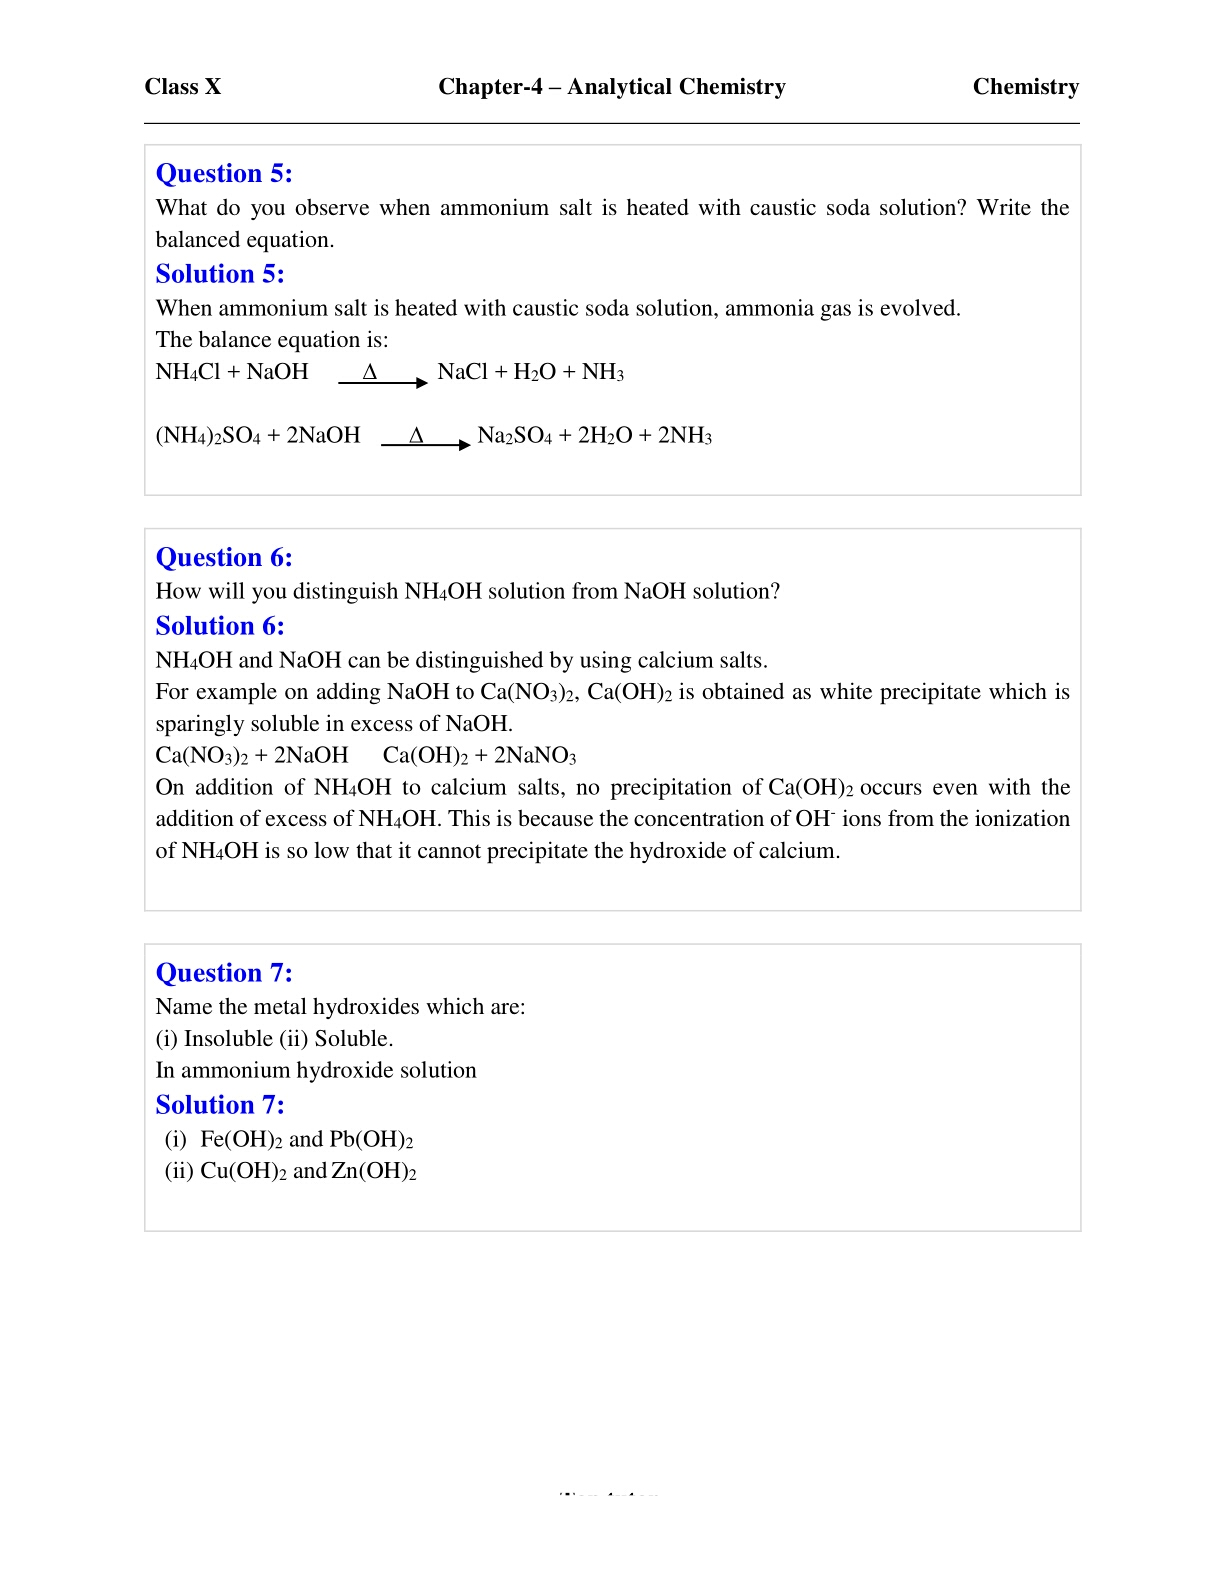 Concise Chemistry class 10 ICSE Chapter 4 Analytical Chemistry